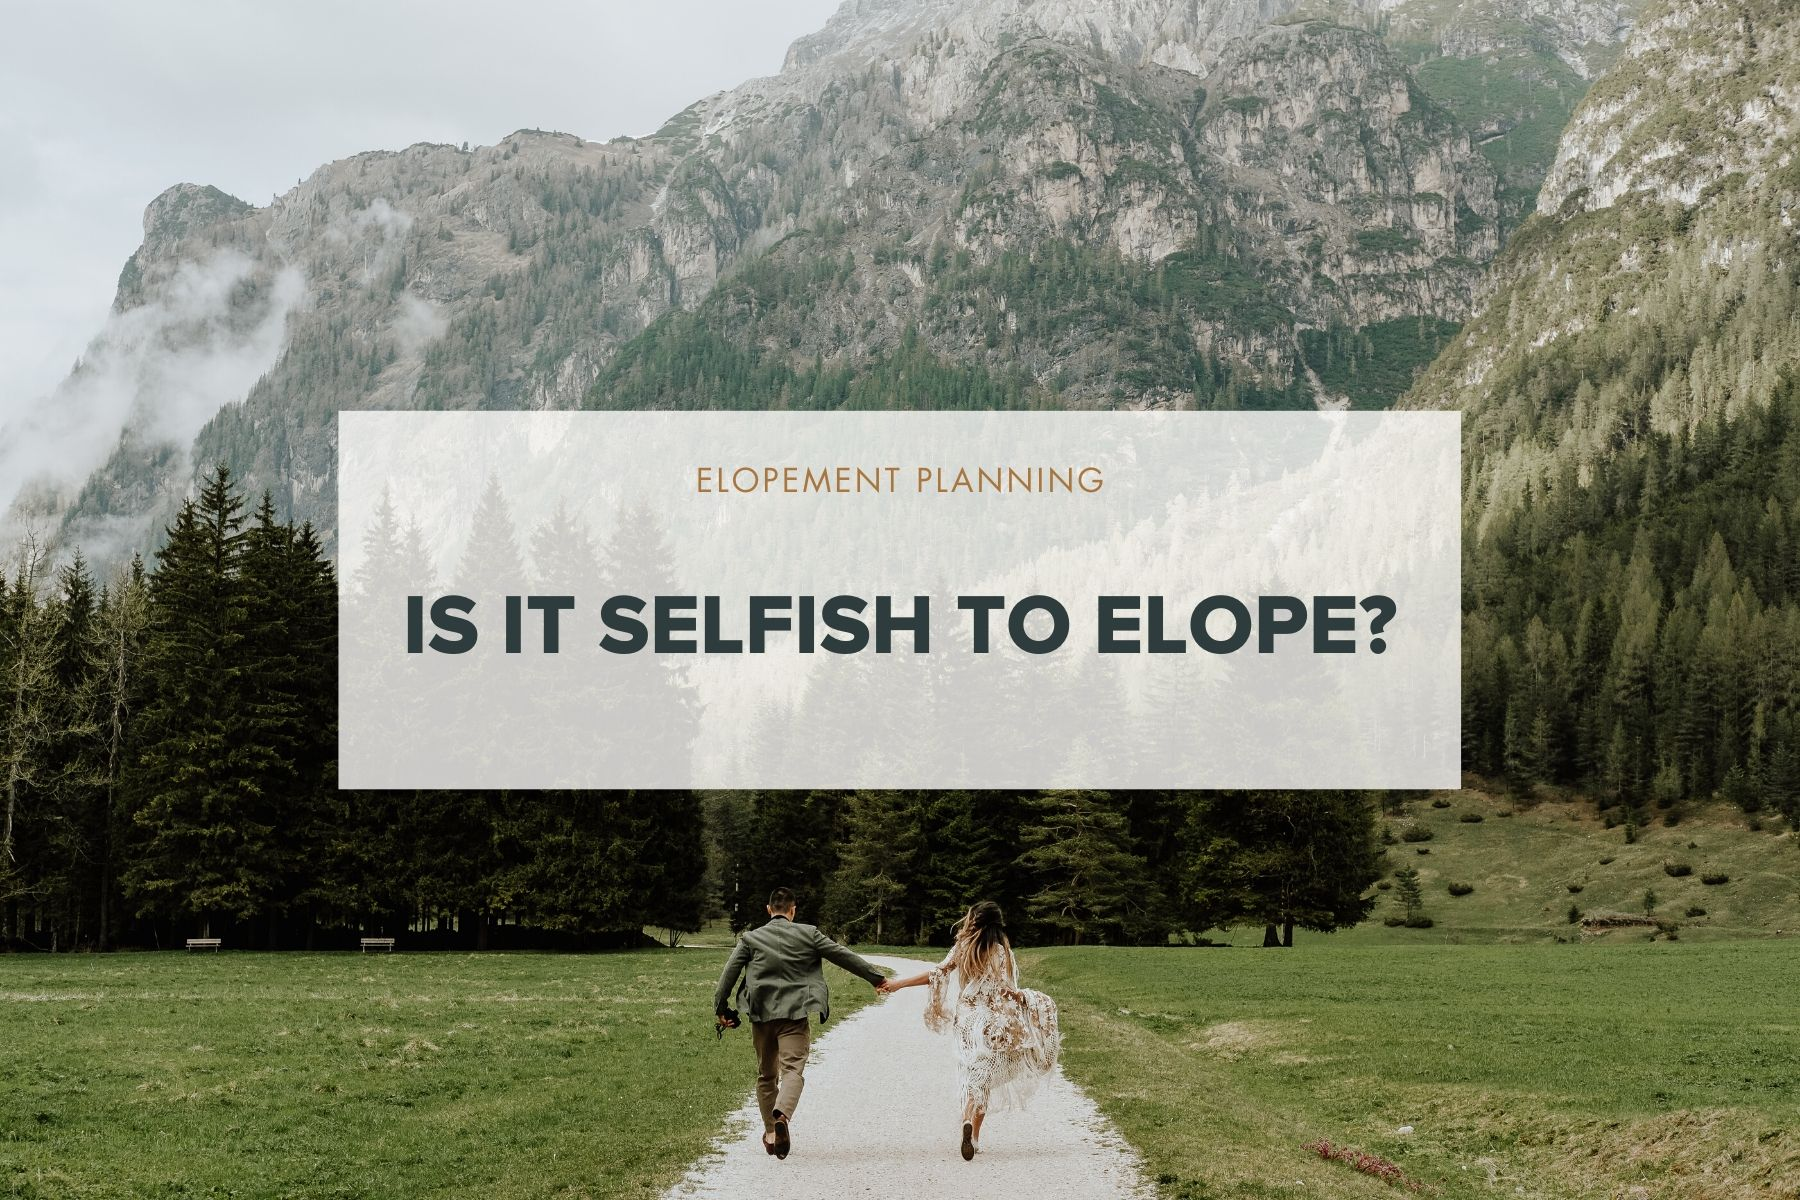 is it selfish to elope? a blog post exploring the topic